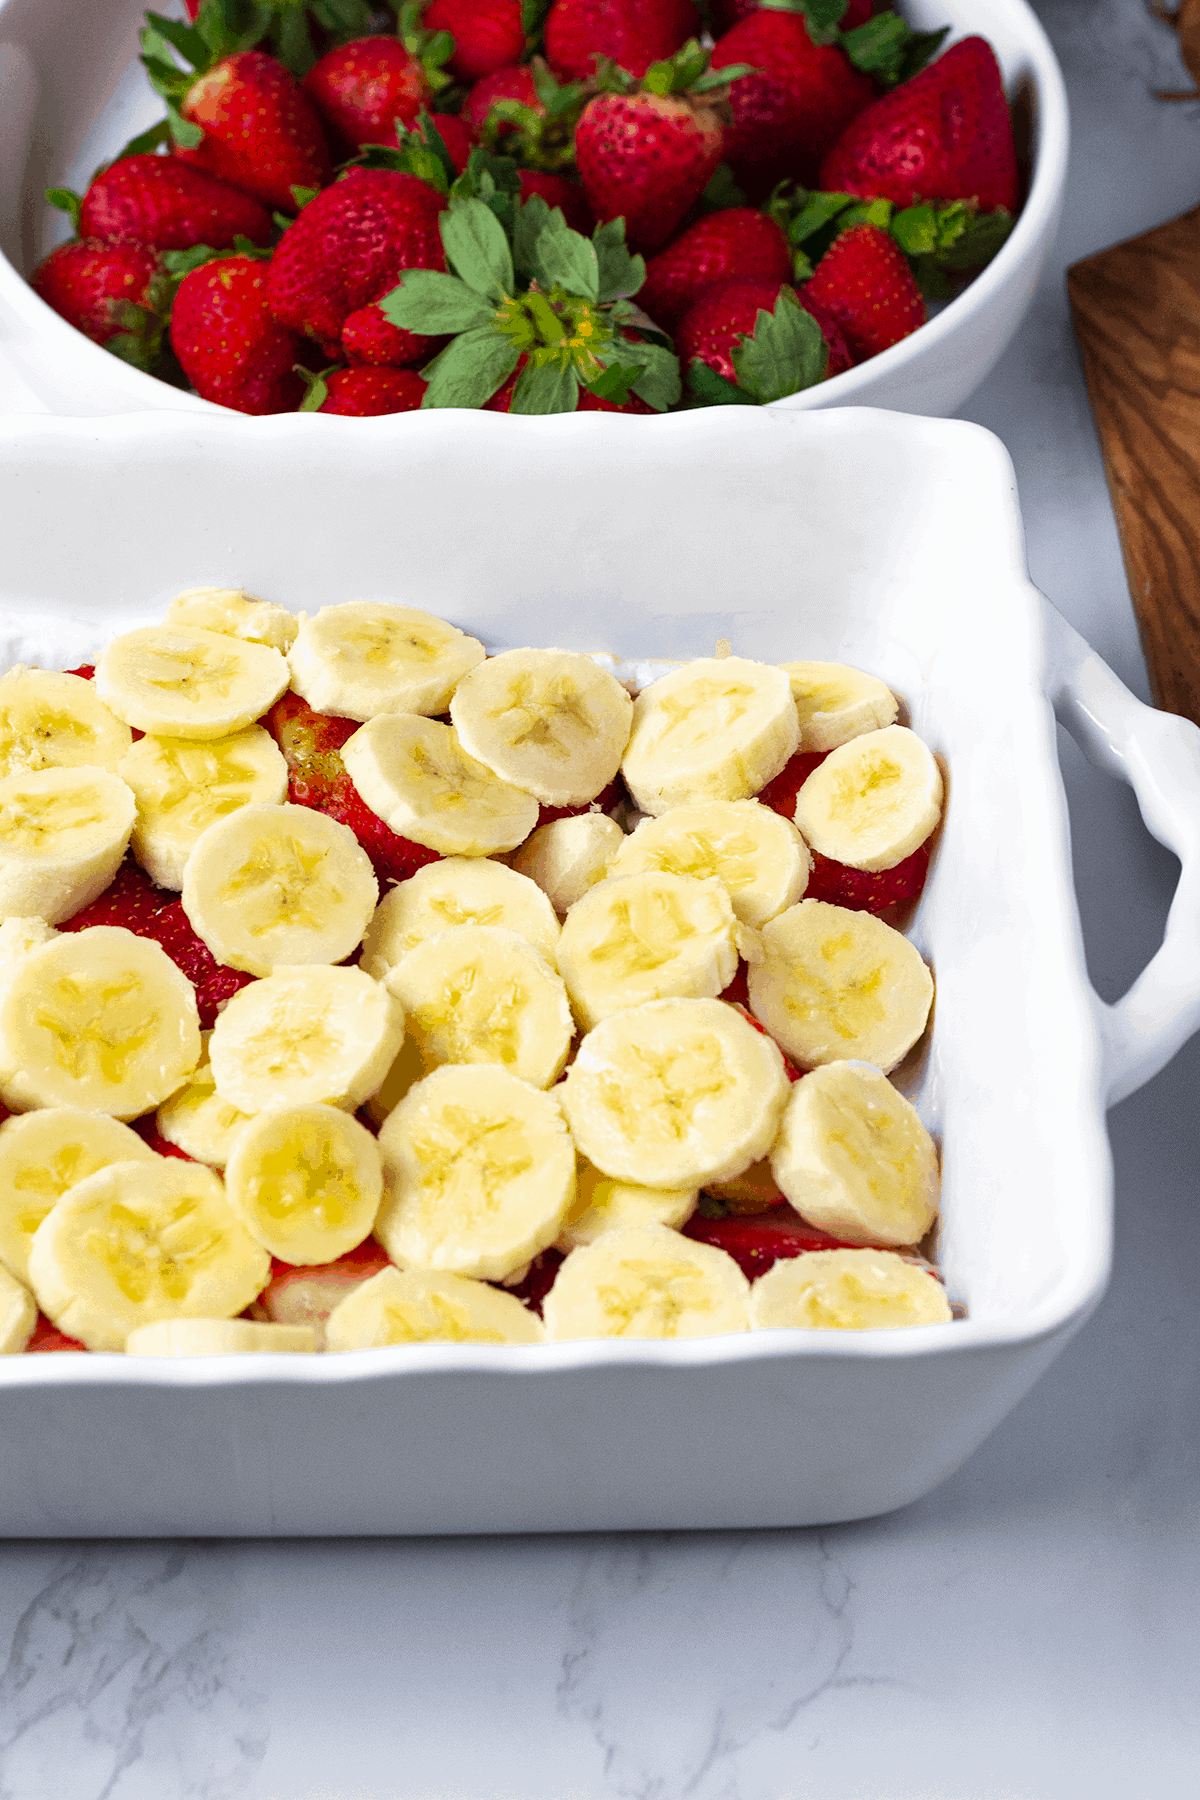 Gluten-Free Vegan Strawberry Ice Box Cake being layered in a white casserole dish with strawberries and bananas